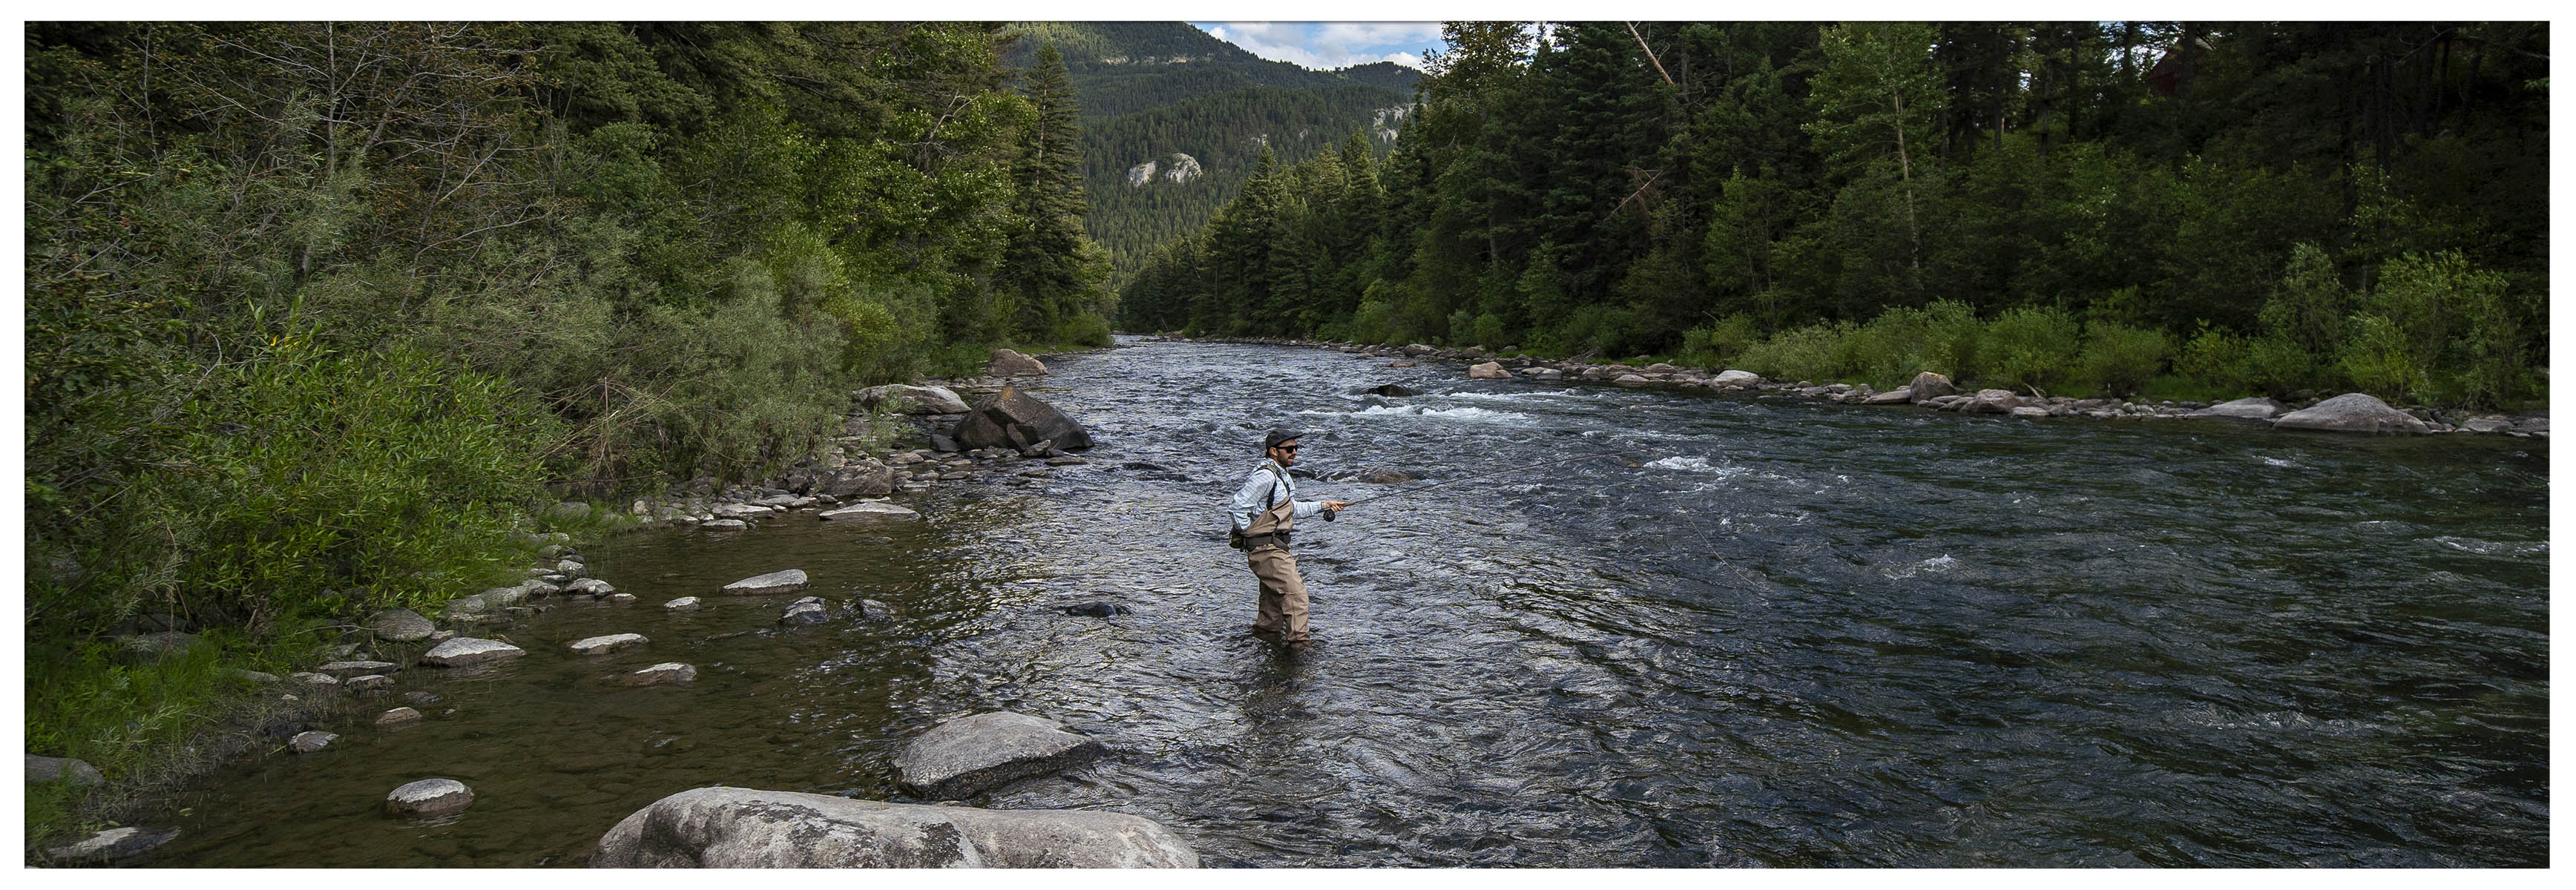 FlyFishing-6_c